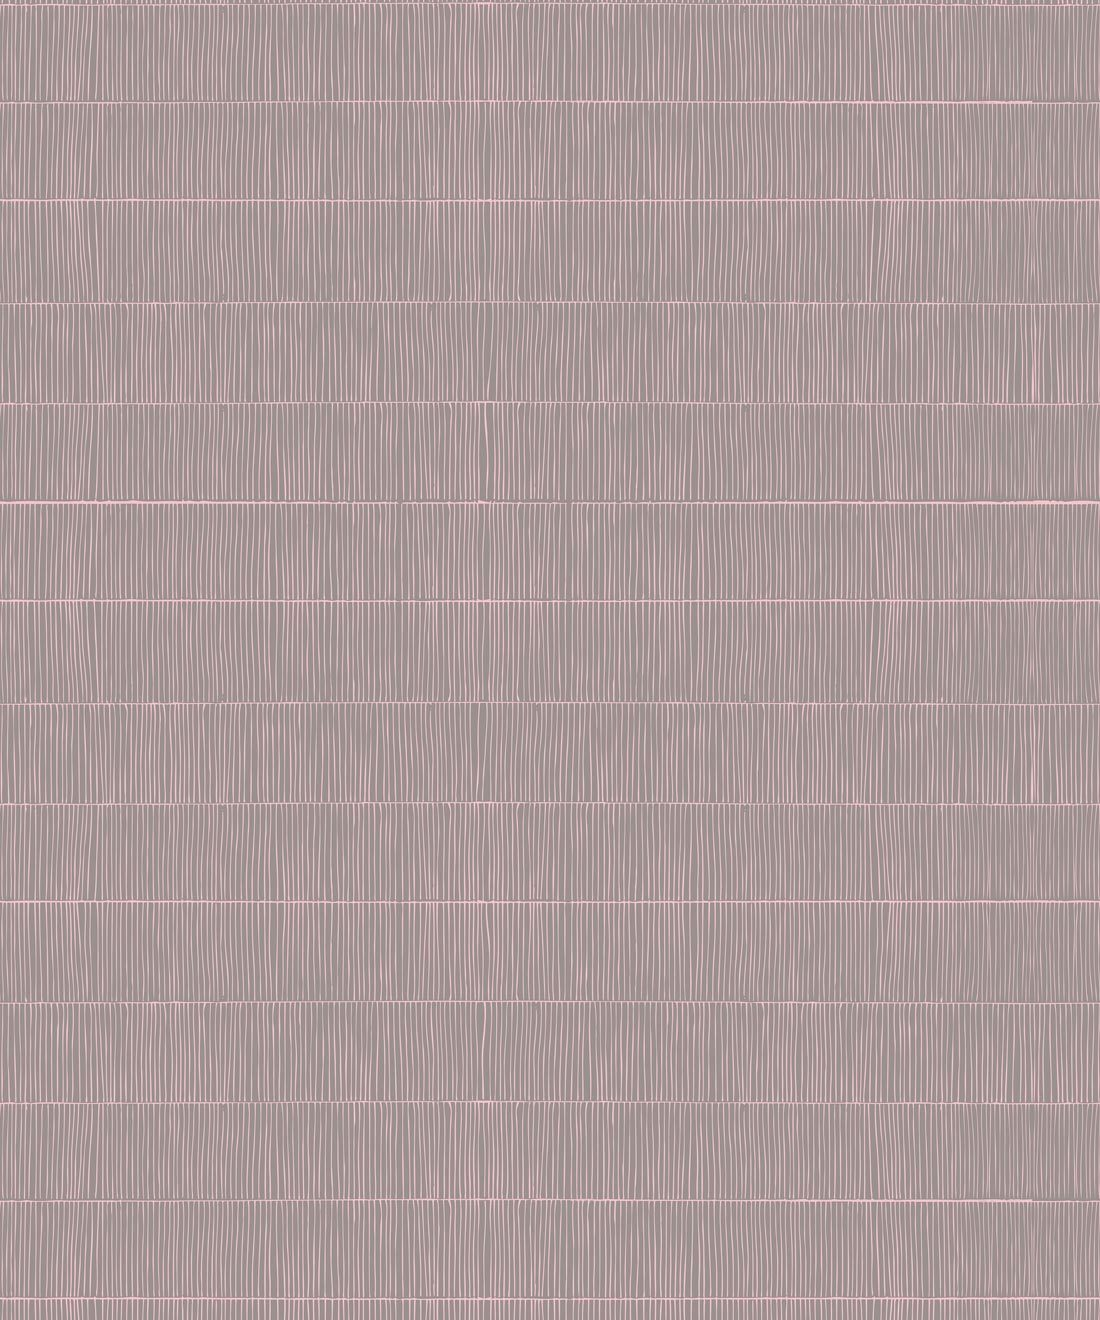 Salt of the Earth - Pink Thread Wallpaper